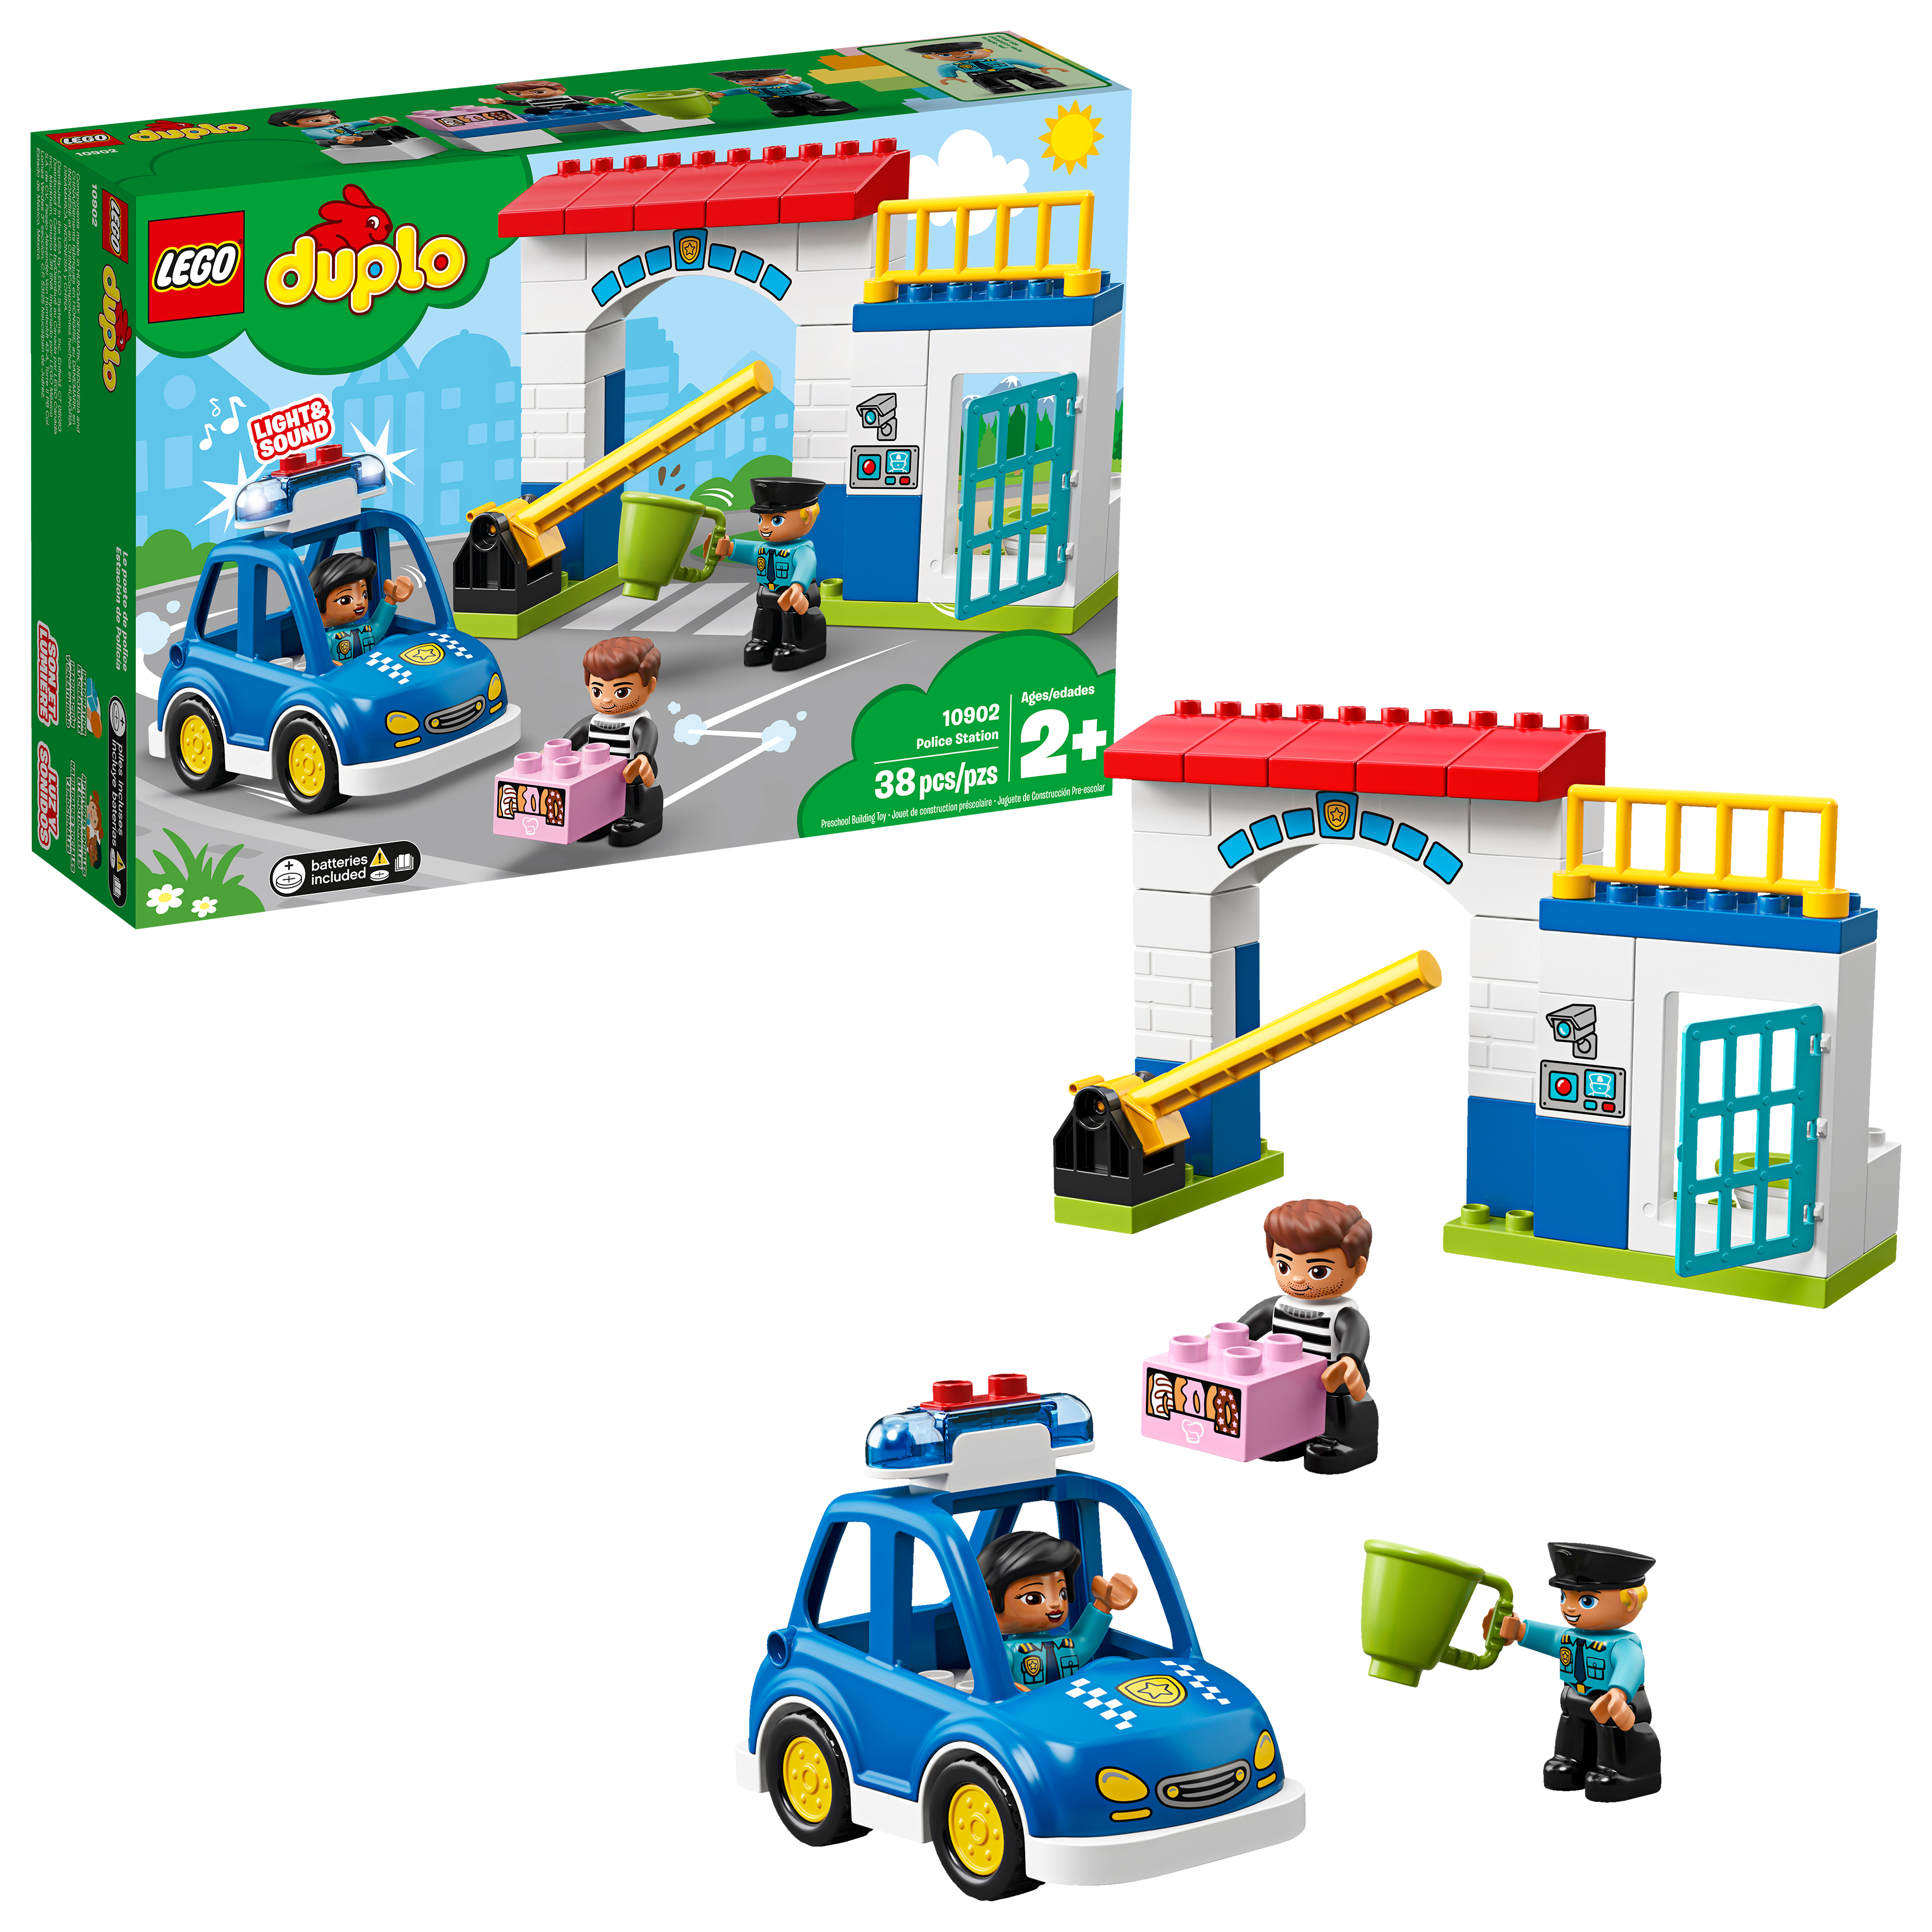 LEGO DUPLO Town Police Station 10902 Preschool Building Set